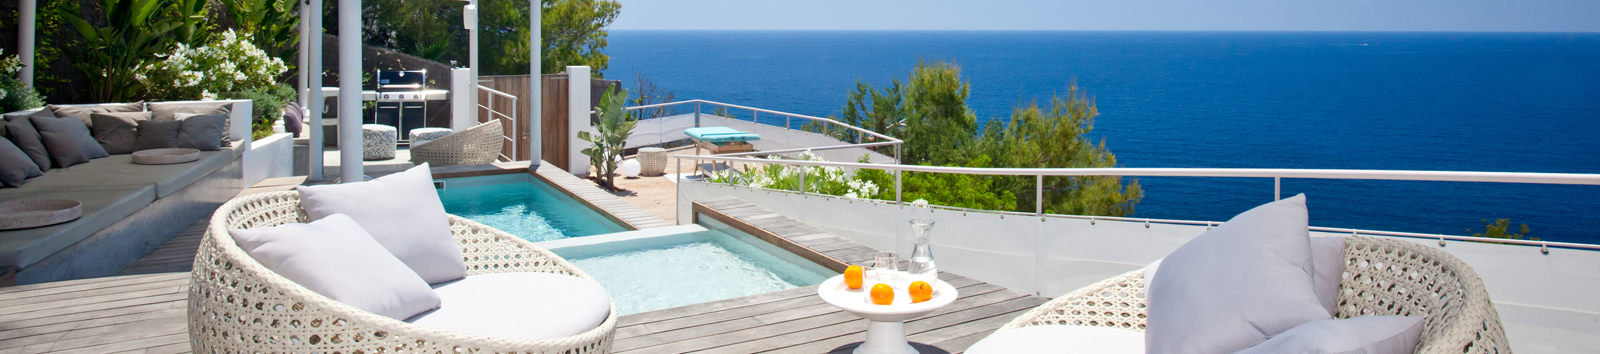 accommodation-spain-luxury-travel-incoming-dmc-concierge-ibiza-villa-TOP